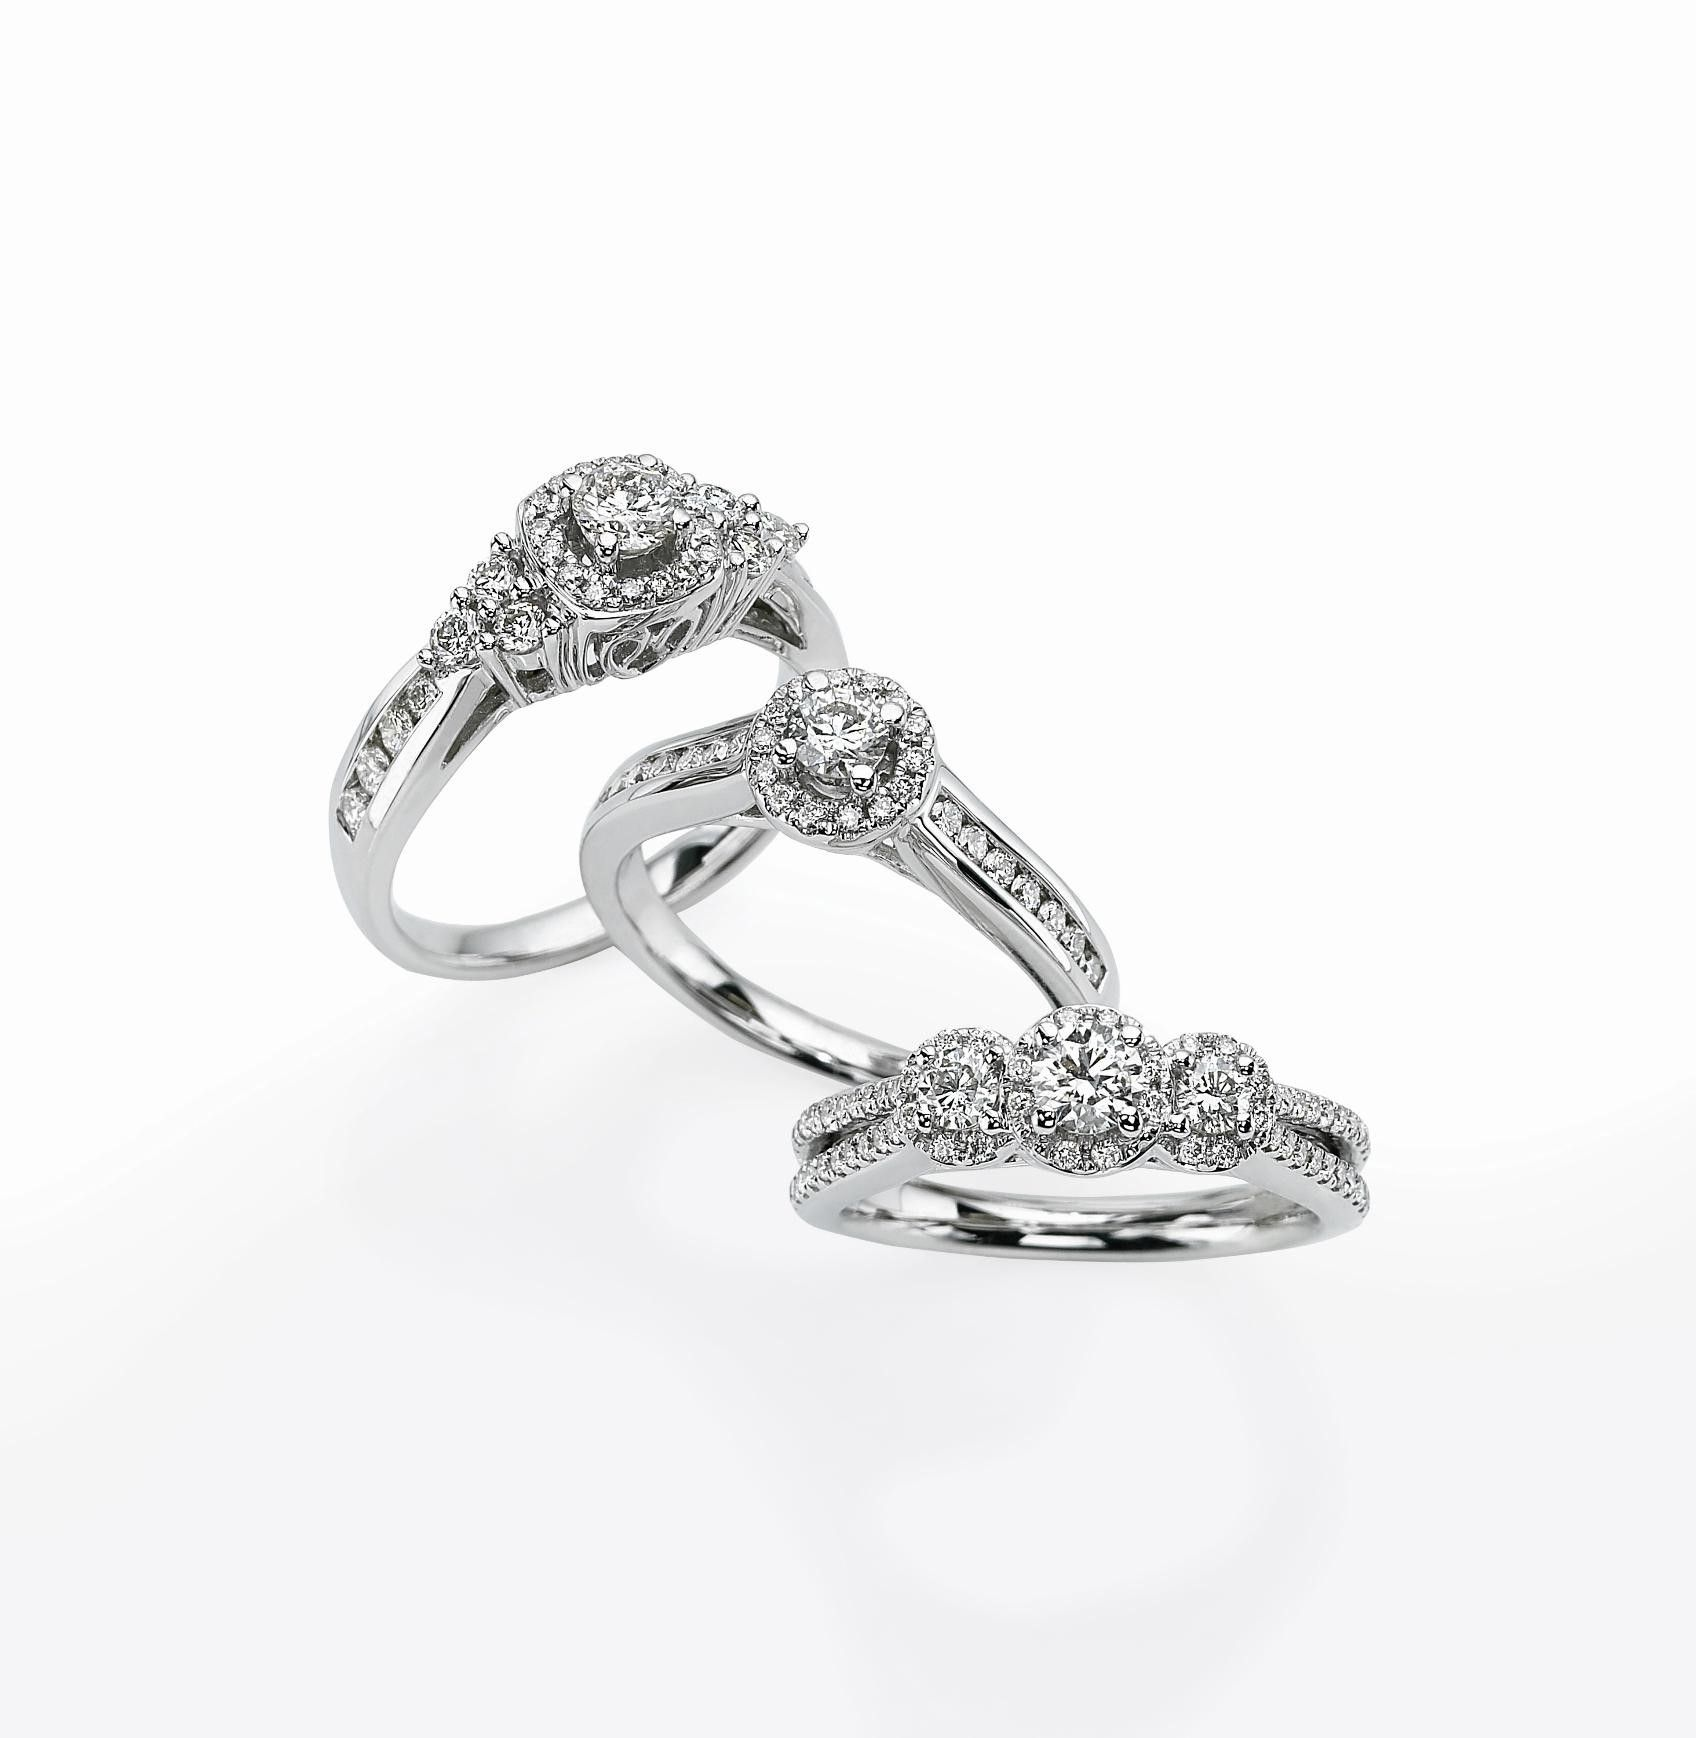 Jcp Wedding Rings Jewelry Rings Engagement Jcpenney Jewelry Gold Wedding Rings